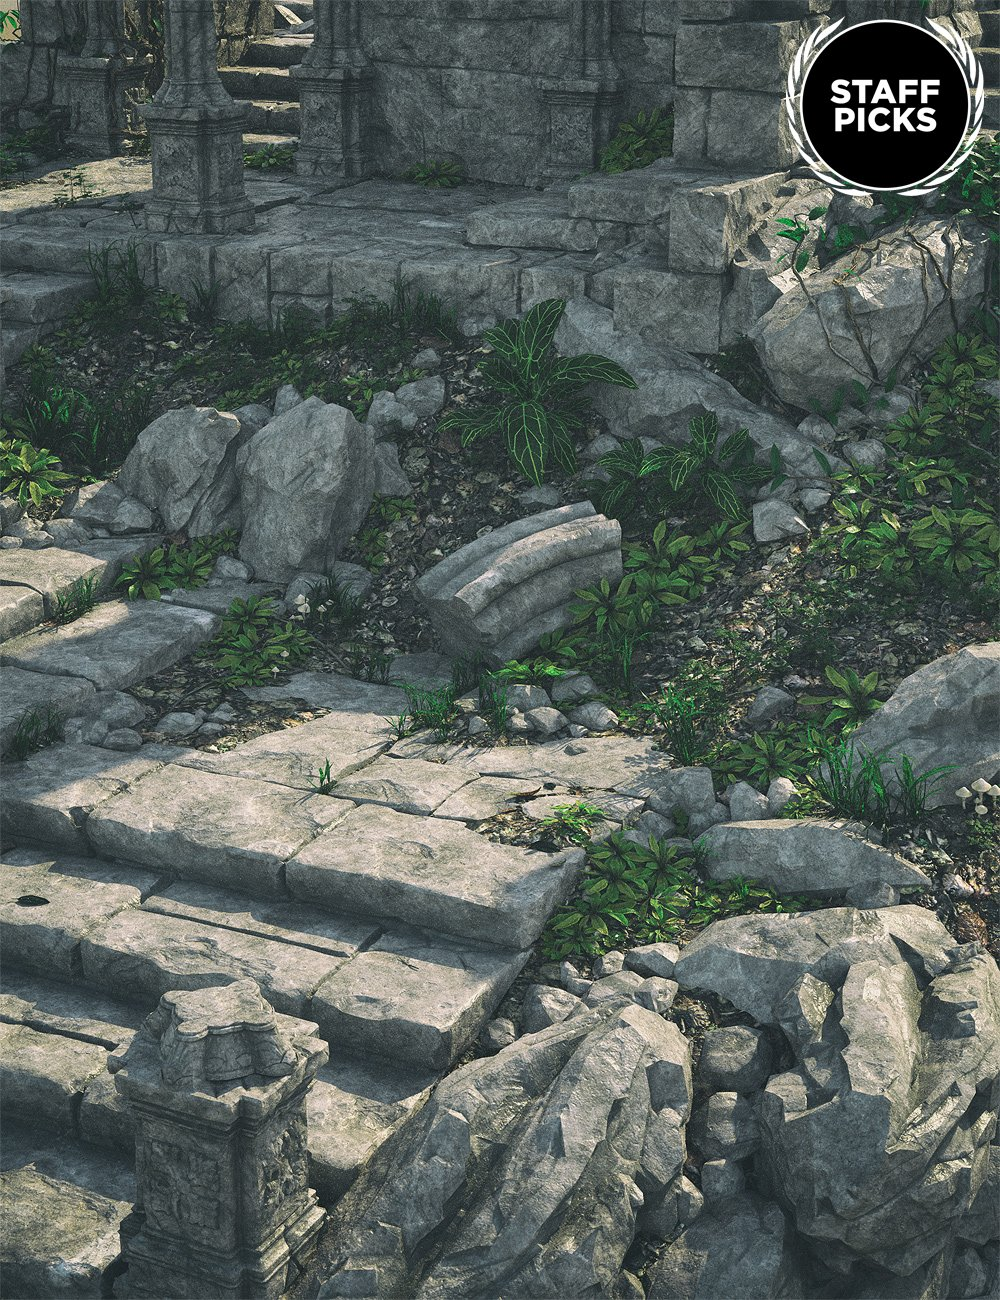 Gothic Ruins 2 by: , 3D Models by Daz 3D